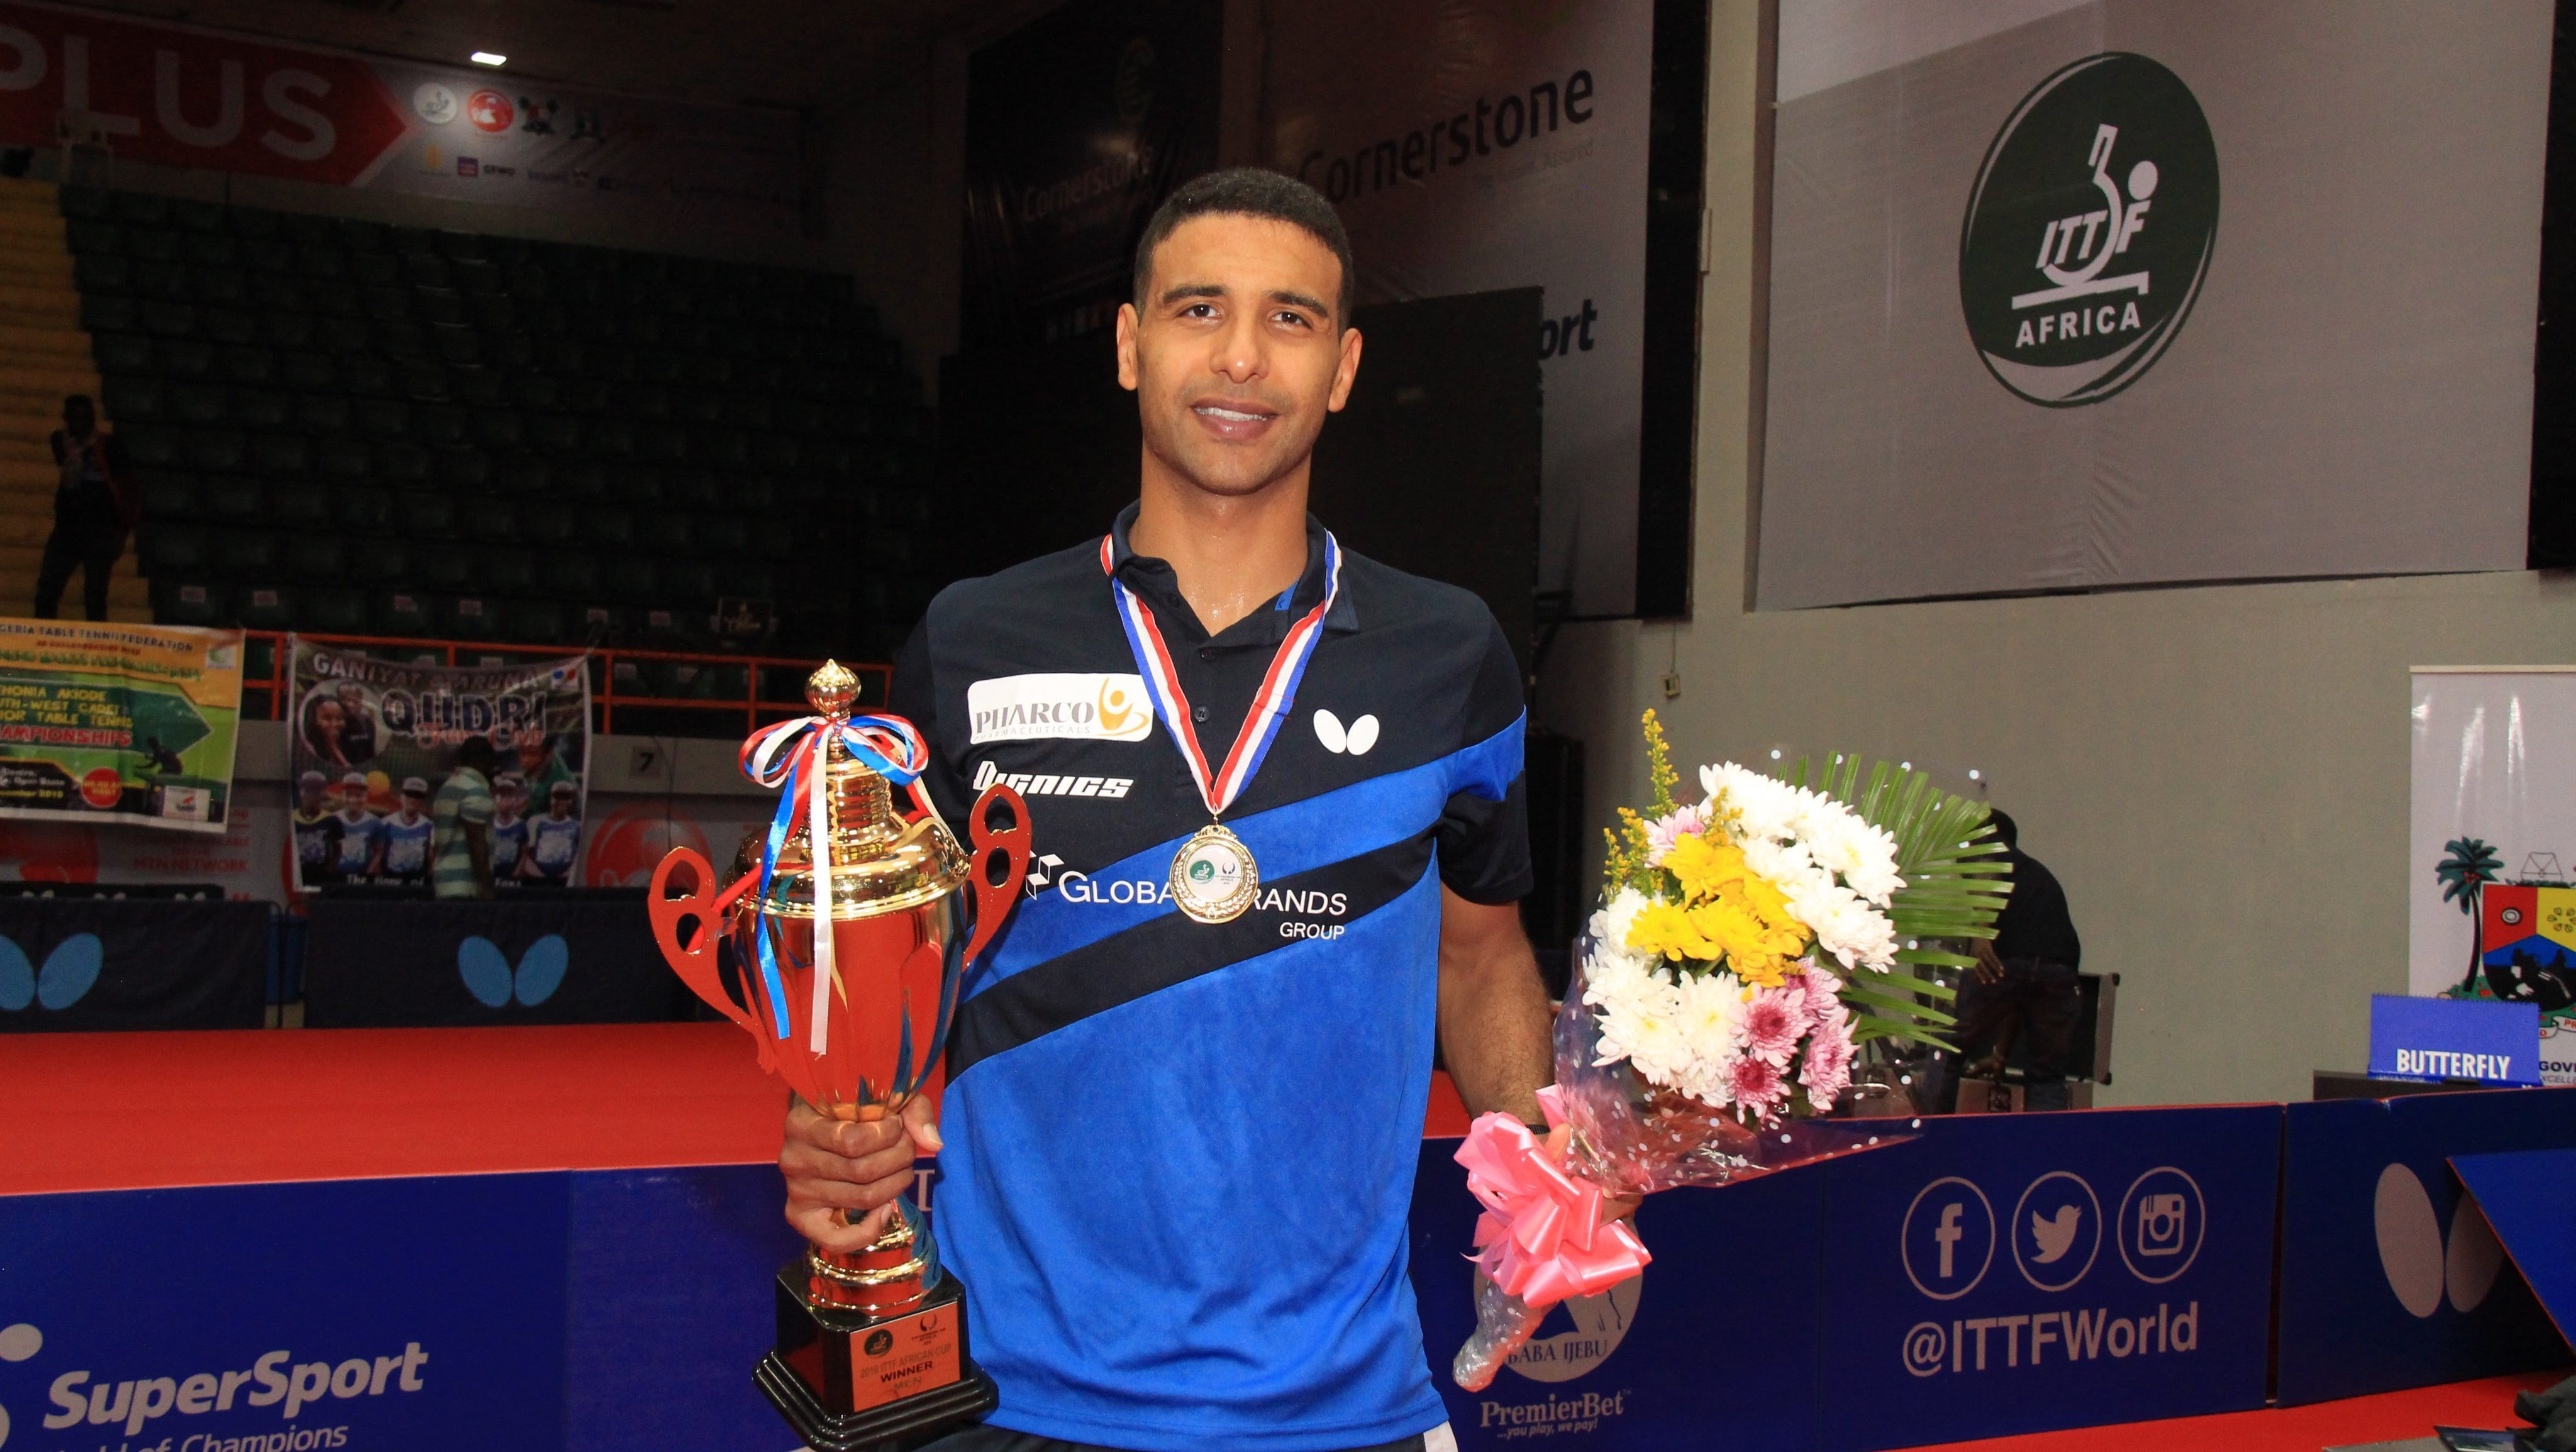 ITTF: Egyptians Crowned African Cup Champions In Lagos